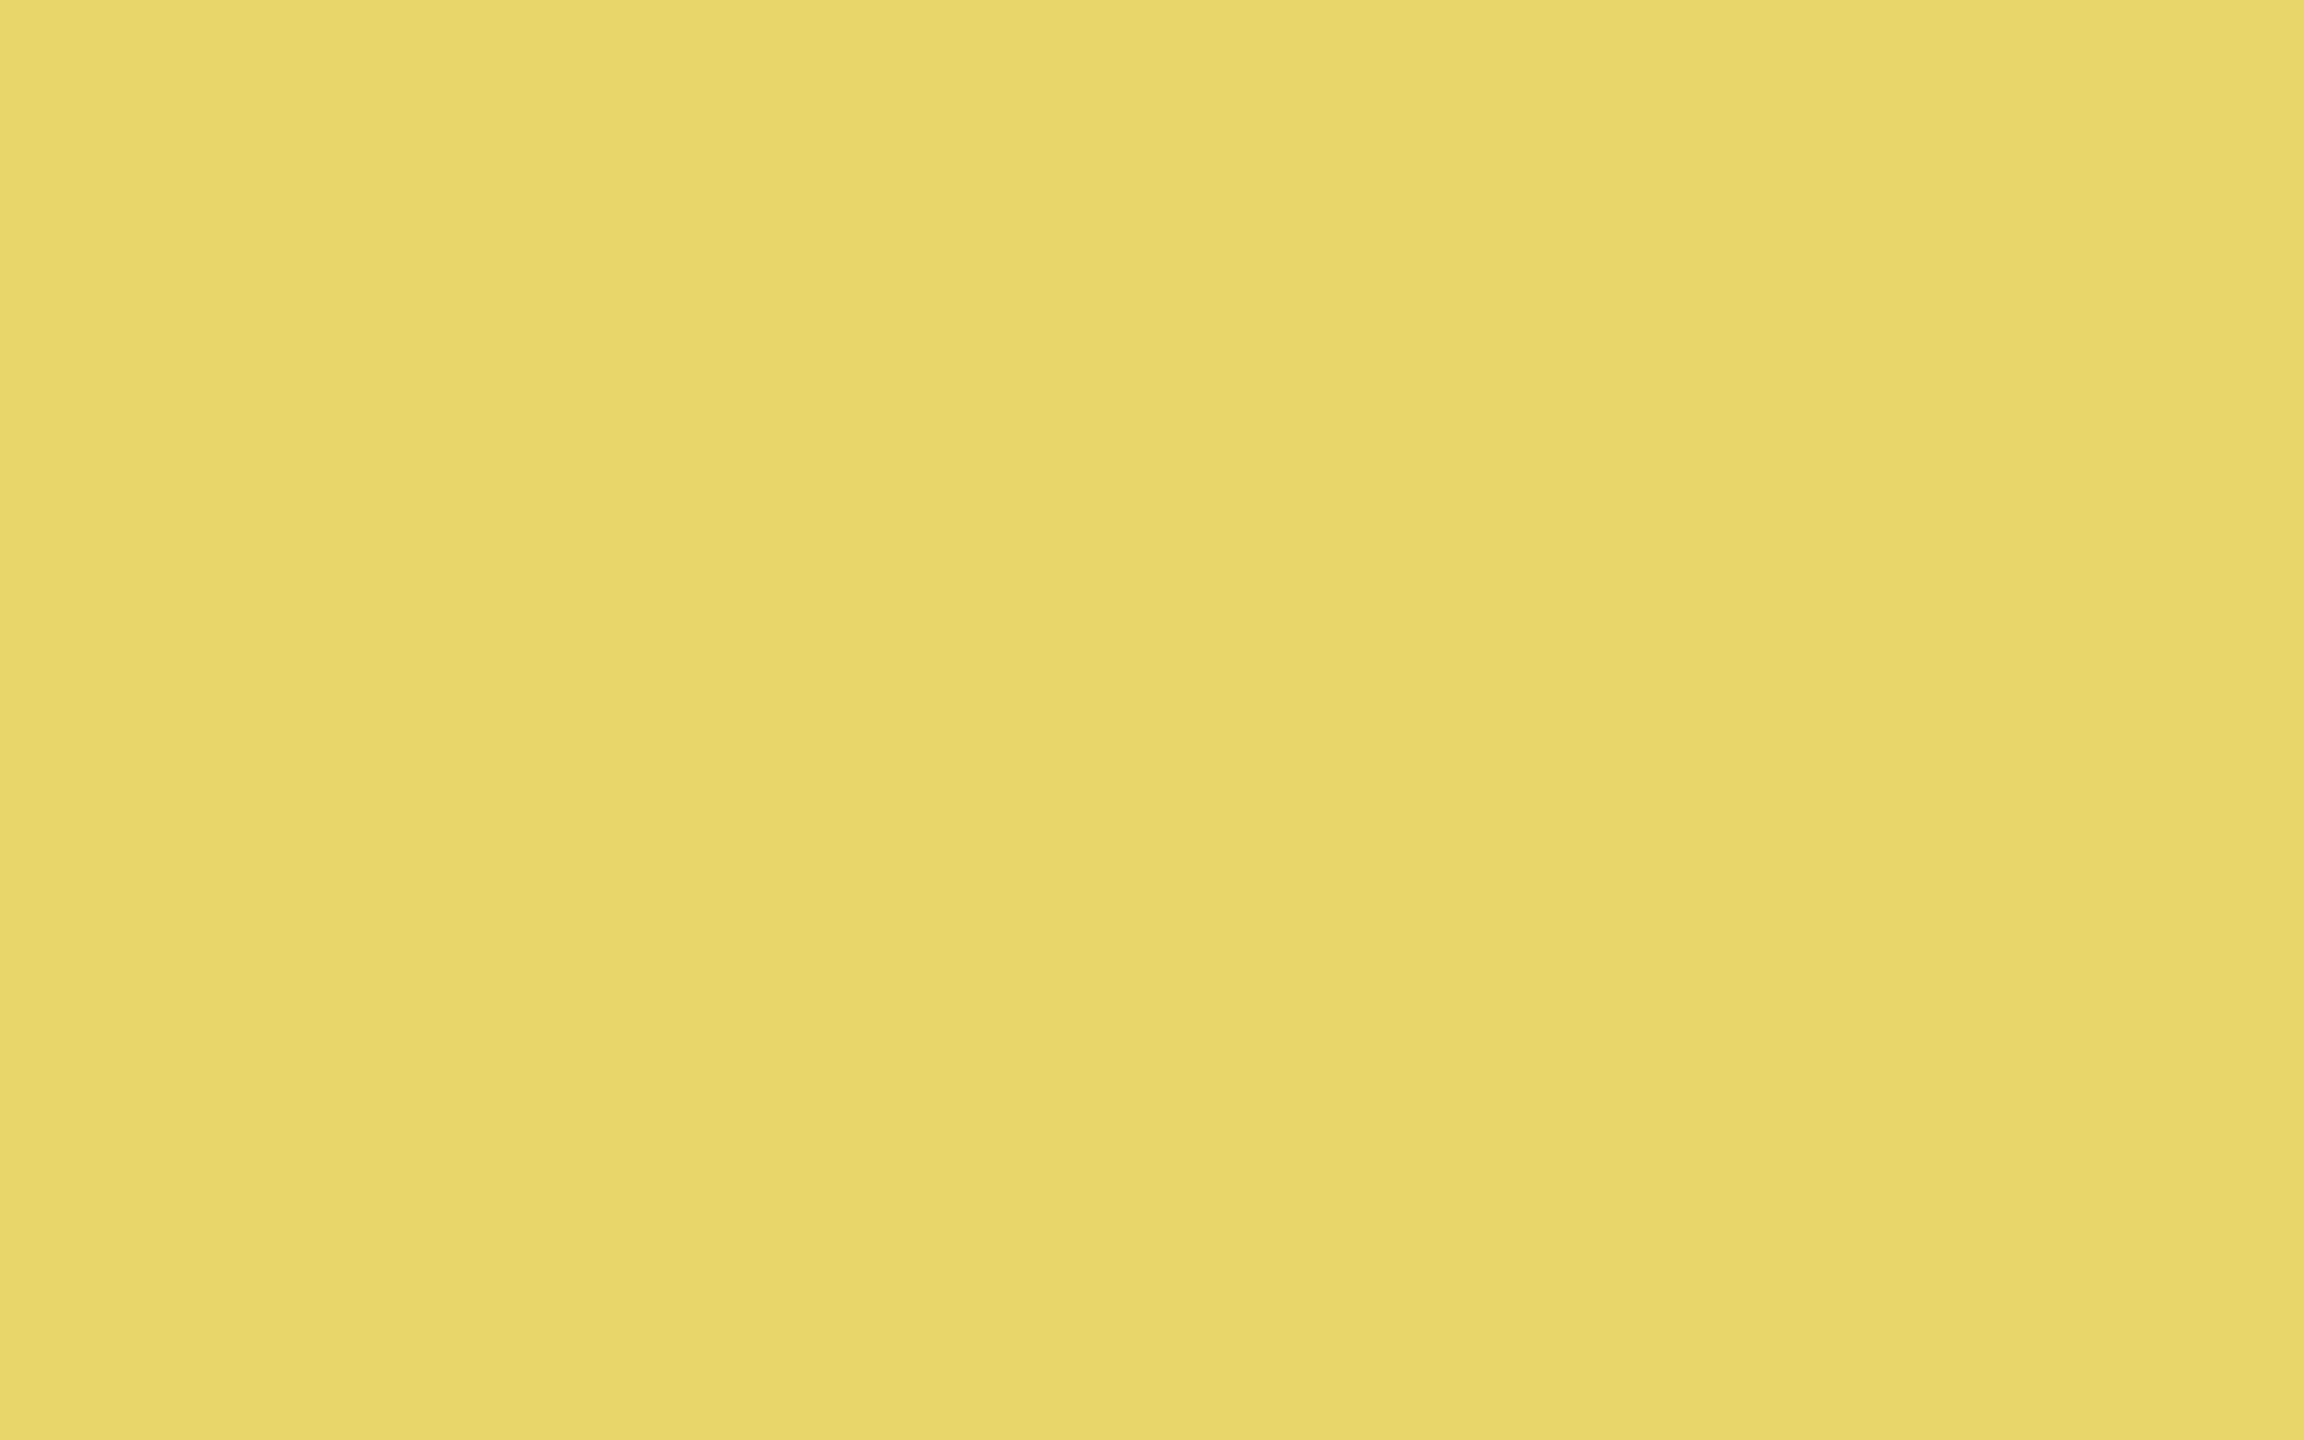 2304x1440 Arylide Yellow Solid Color Background